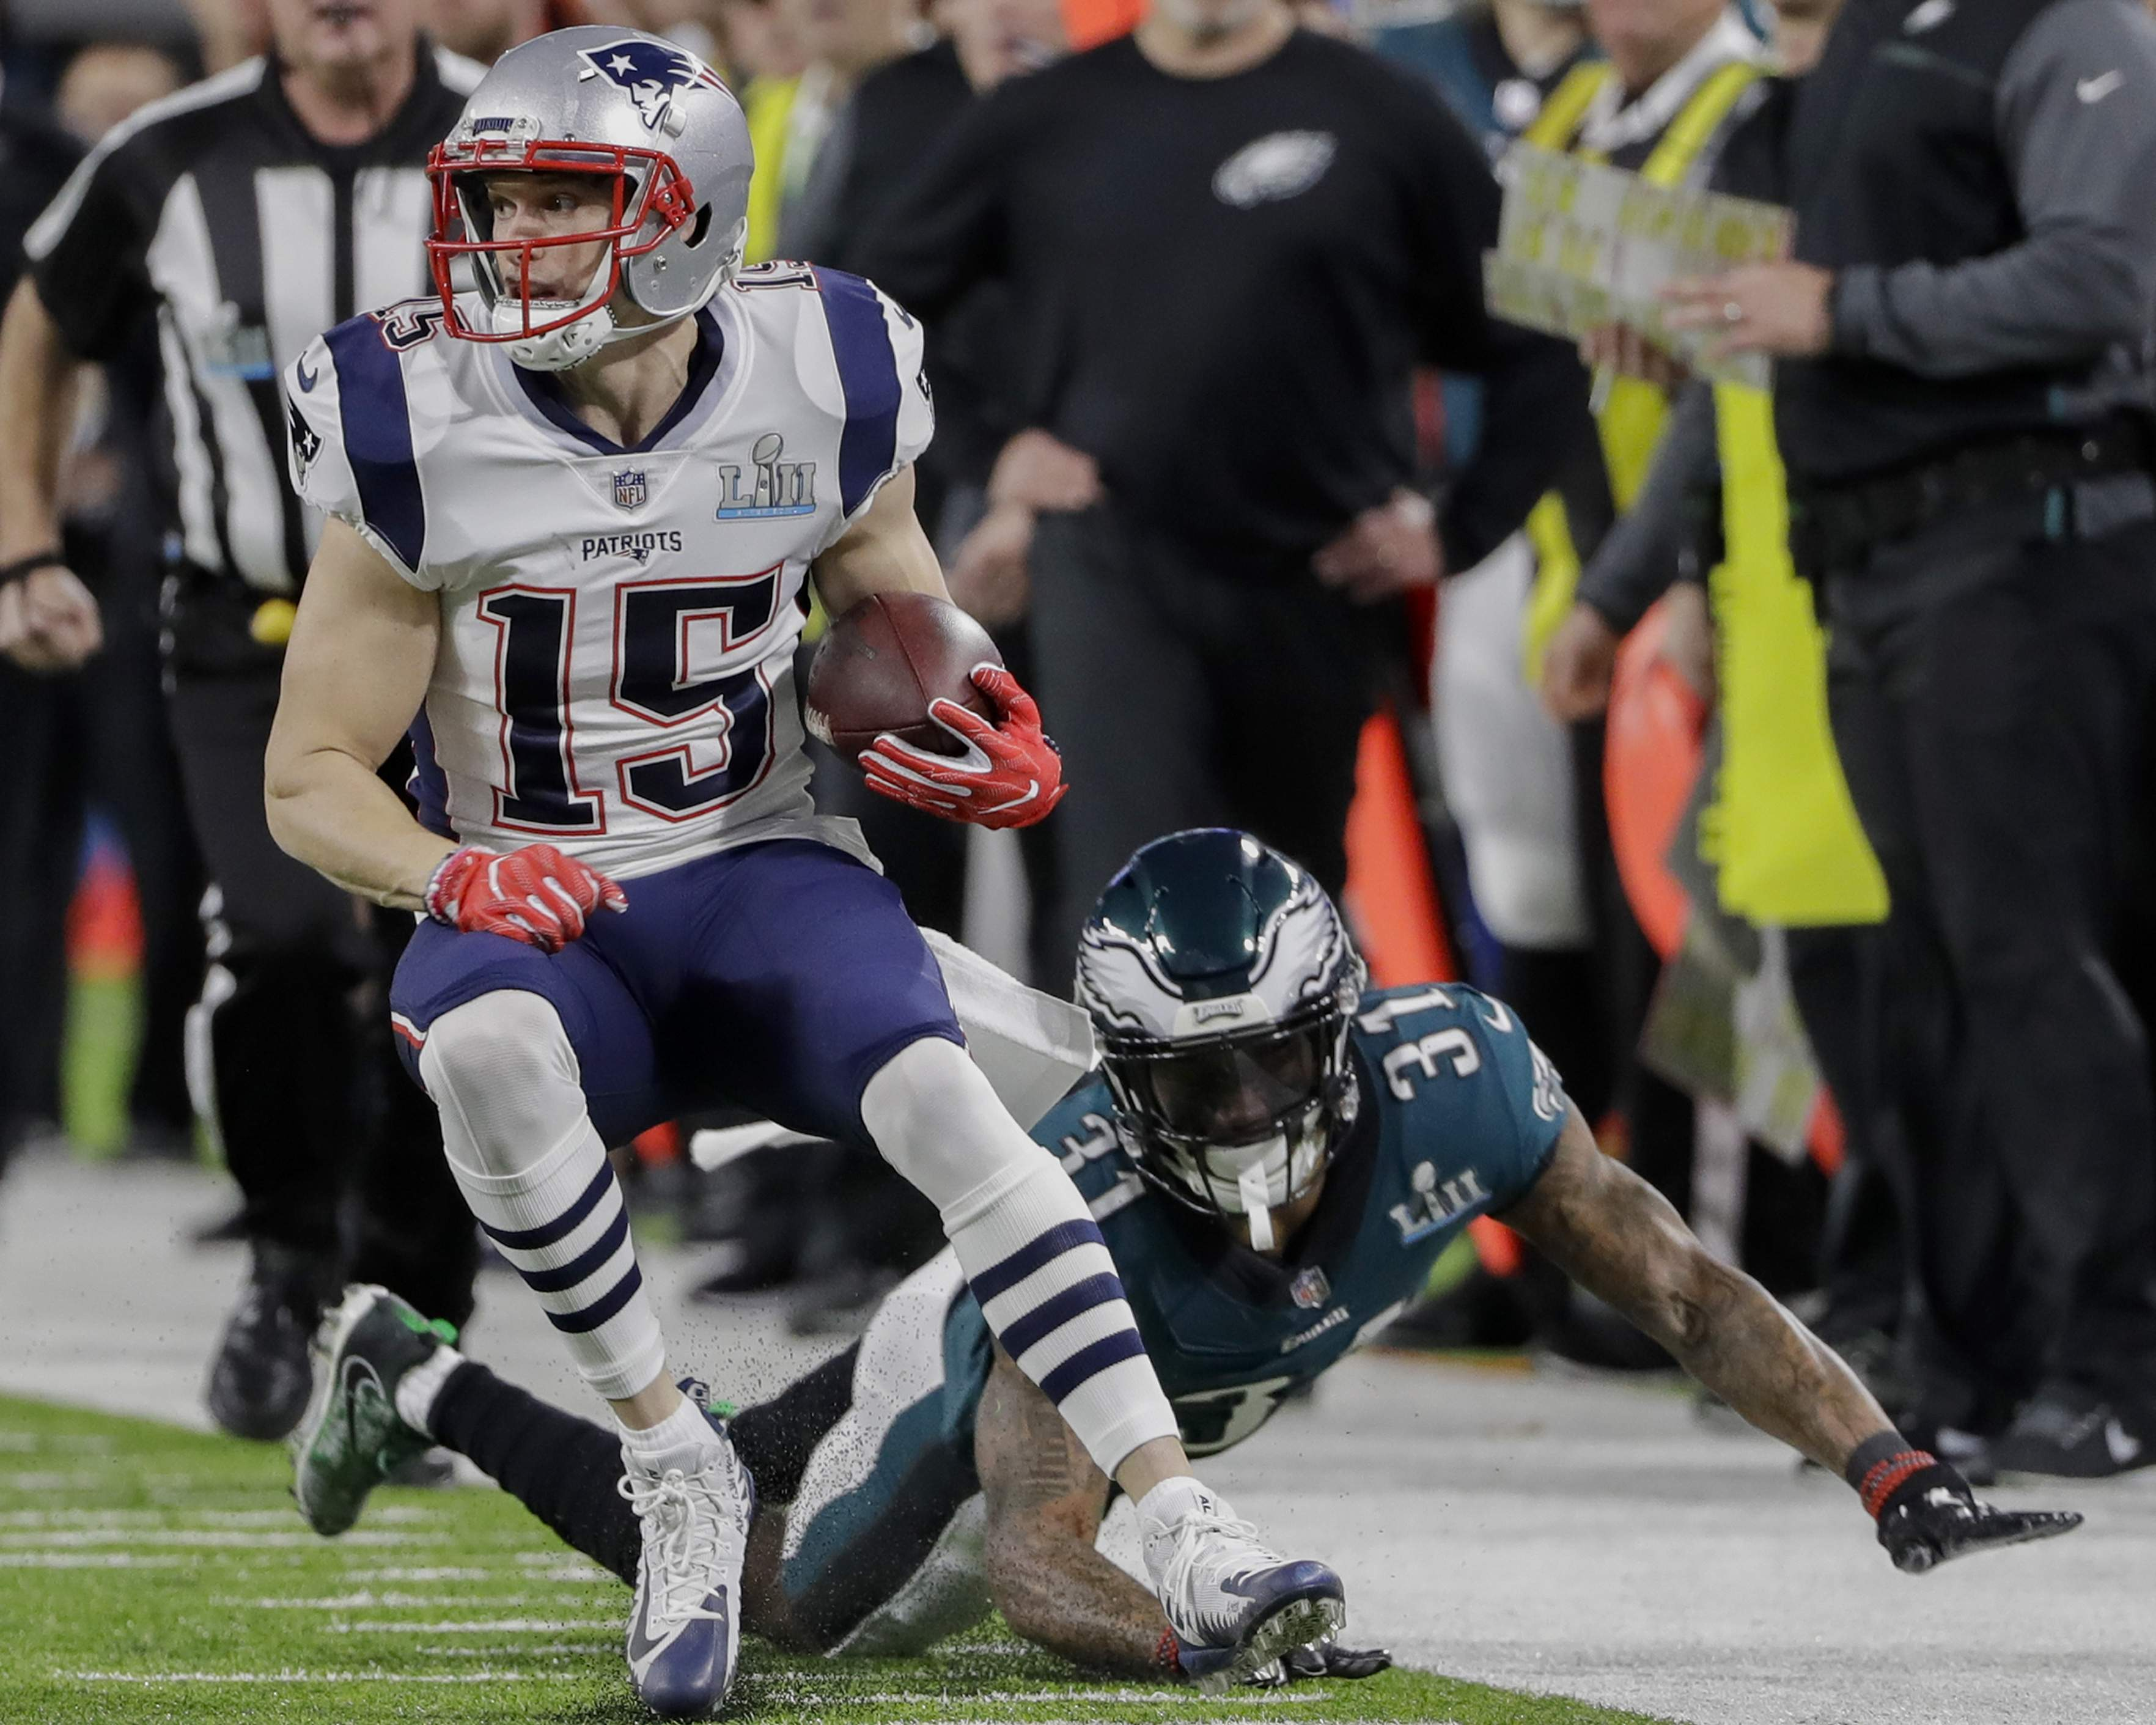 New England Patriots wide receiver Chris Hogan (15) runs ahead of Philadelphia Eagles cornerback Jalen Mills (31), during the first half of the NFL Super Bowl 52 football game Sunday, Feb. 4, 2018, in Minneapolis. (AP Photo/Chris O'Meara)